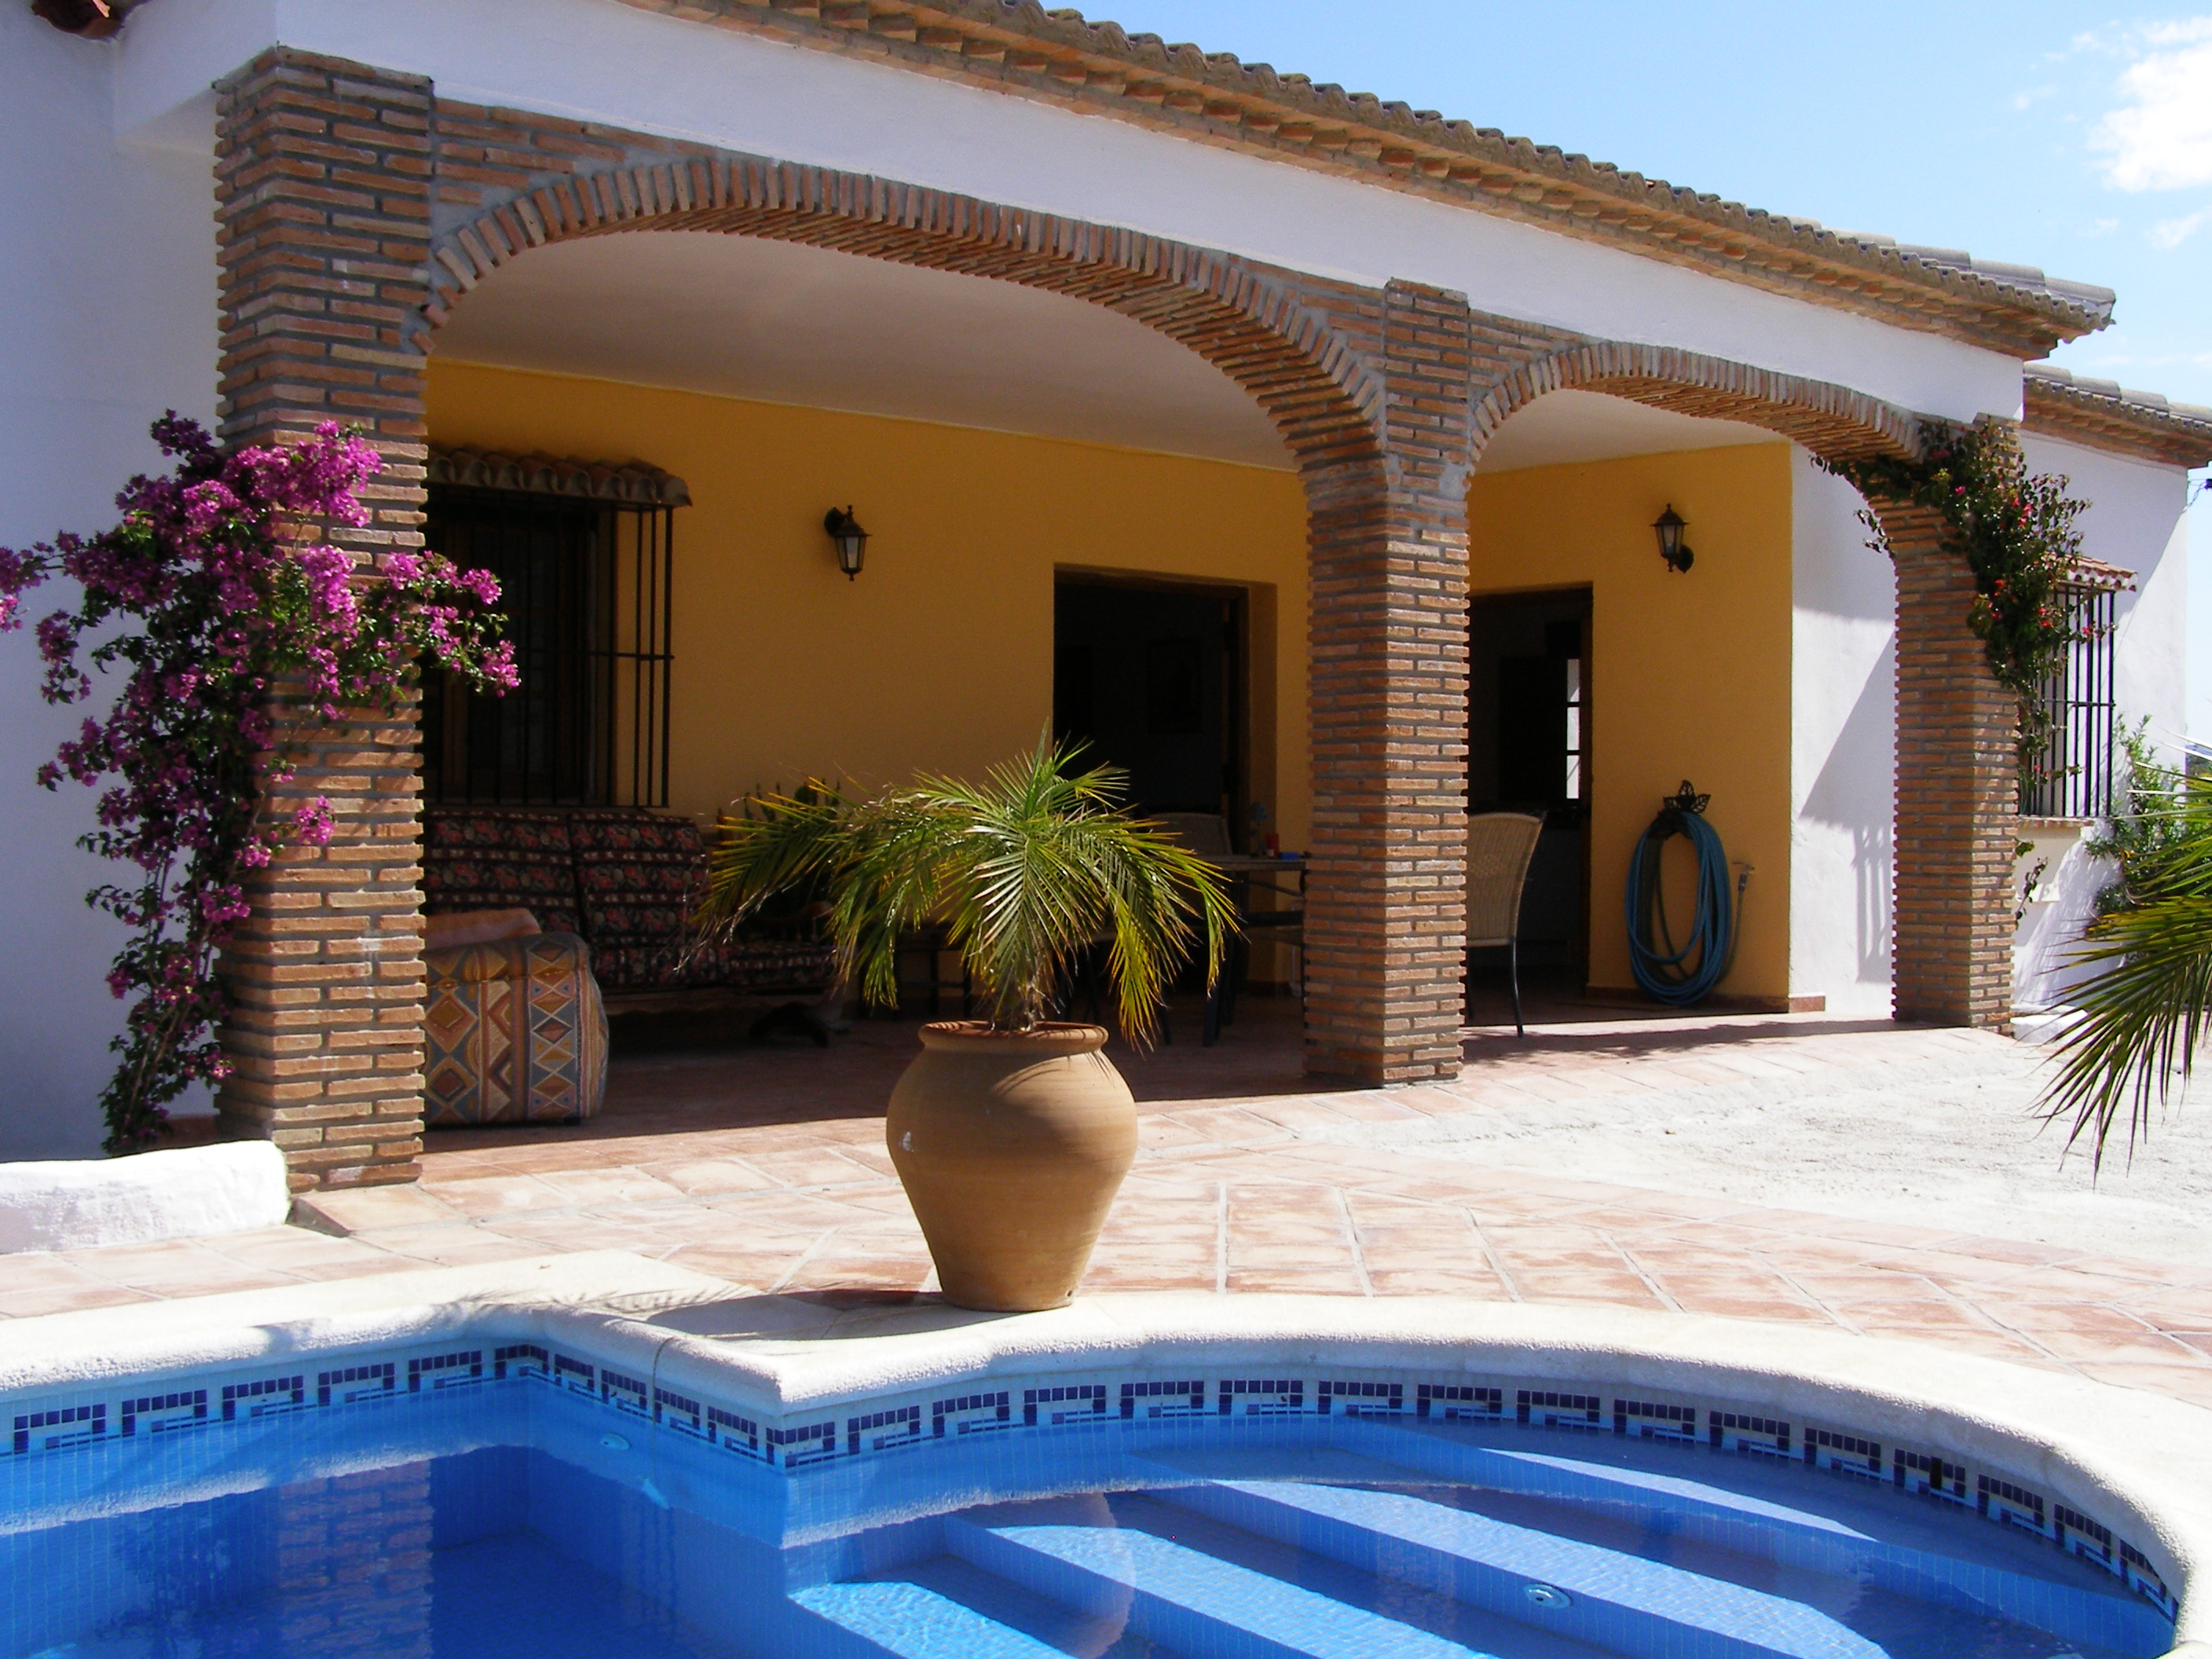 rent_home_spain_malaga_villa4